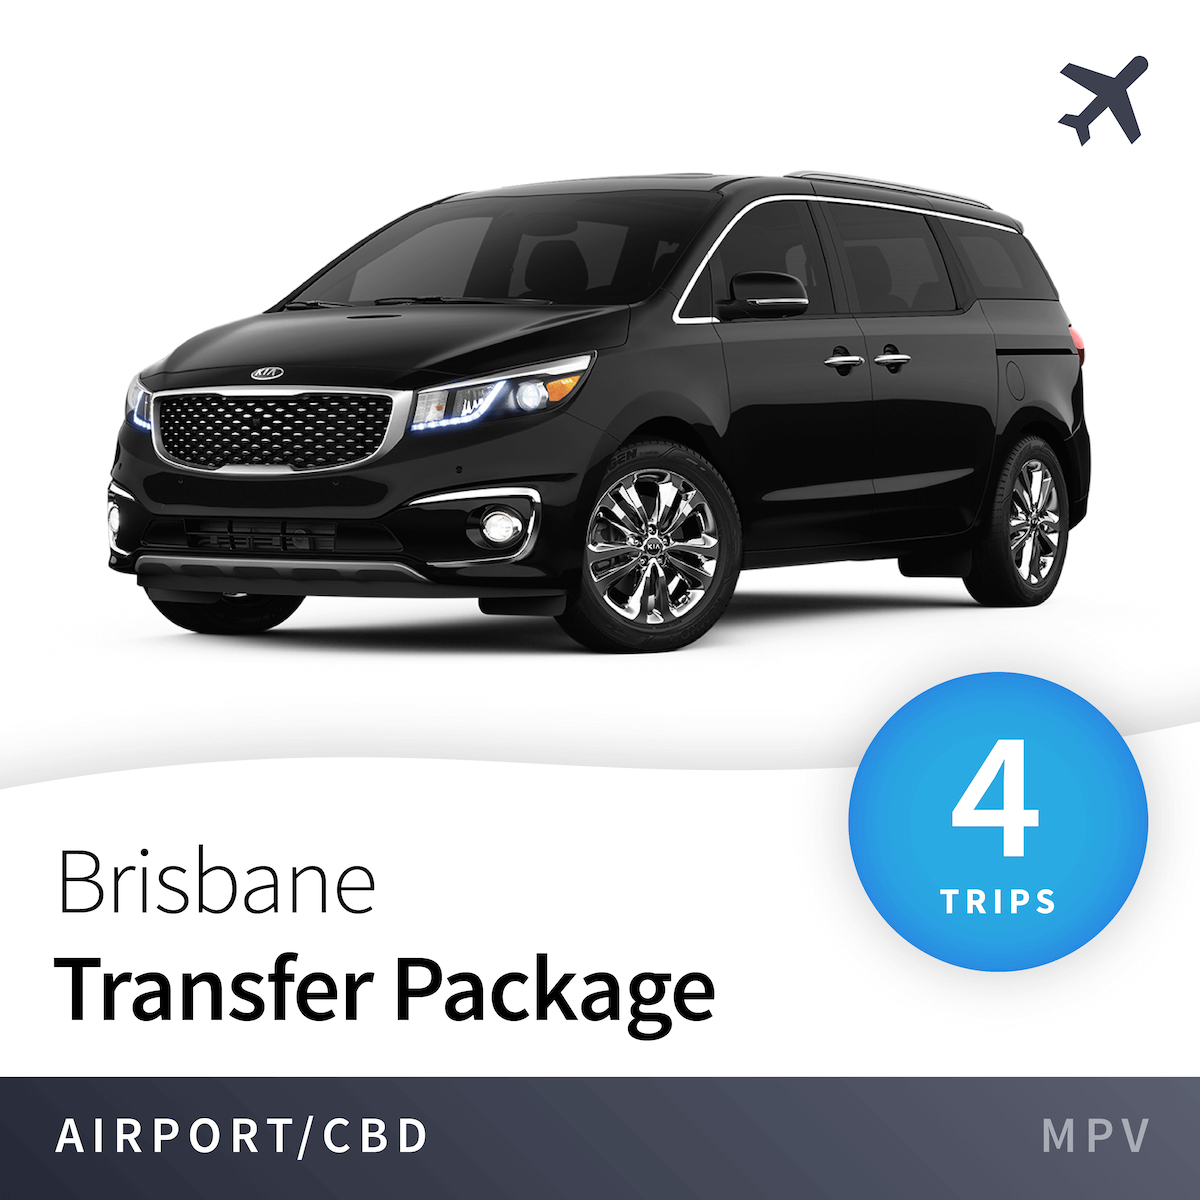 Brisbane Airport Transfer Package - MPV (4 Trips) 8